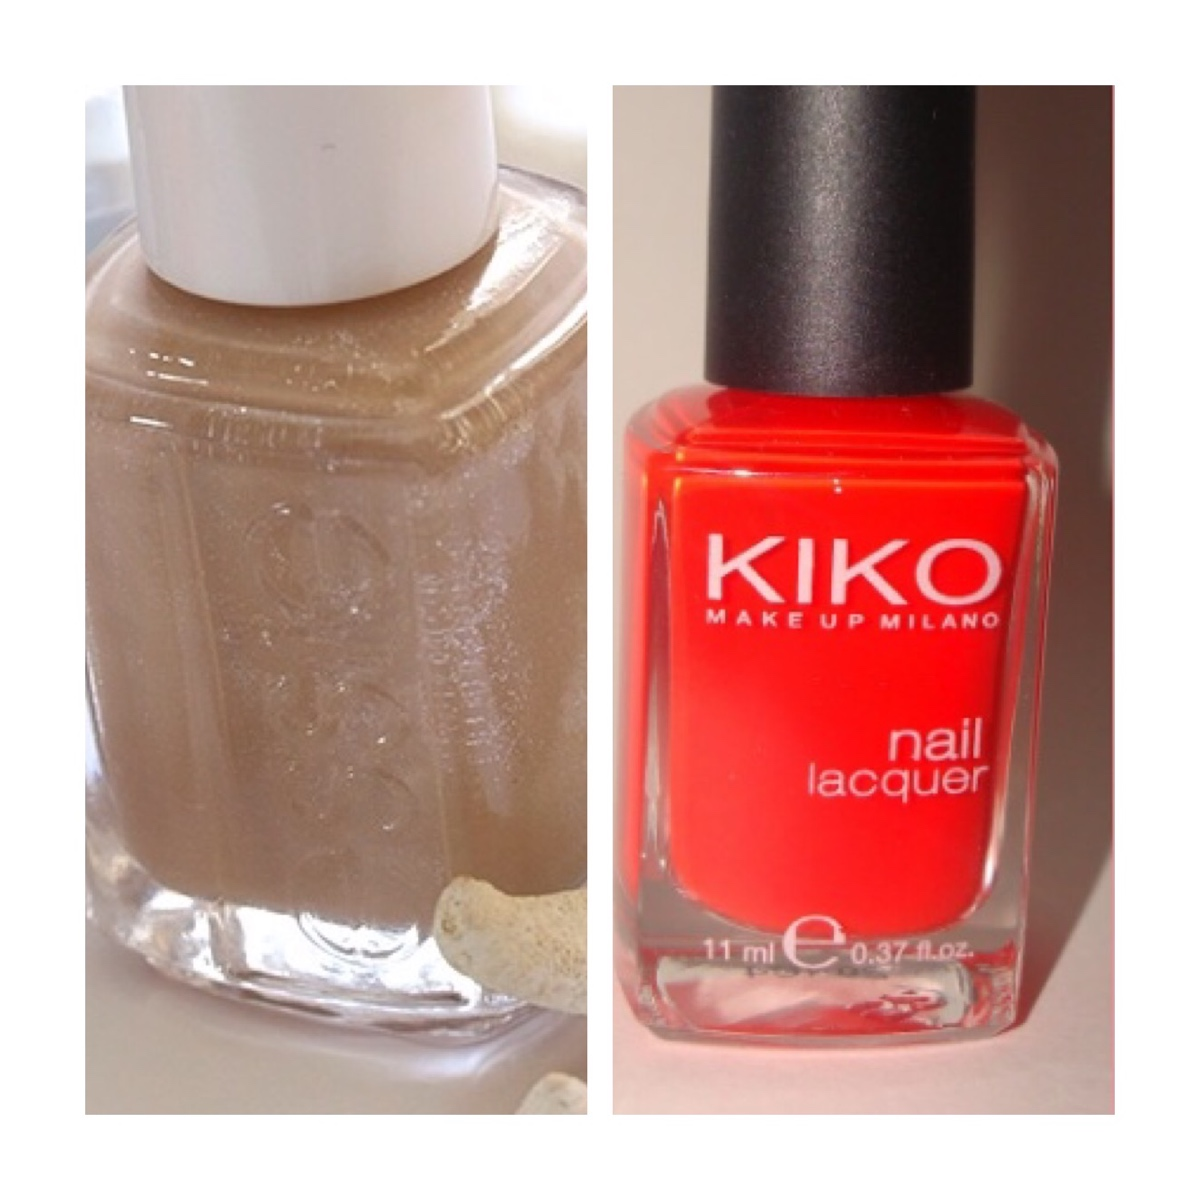 Essie and Kiko